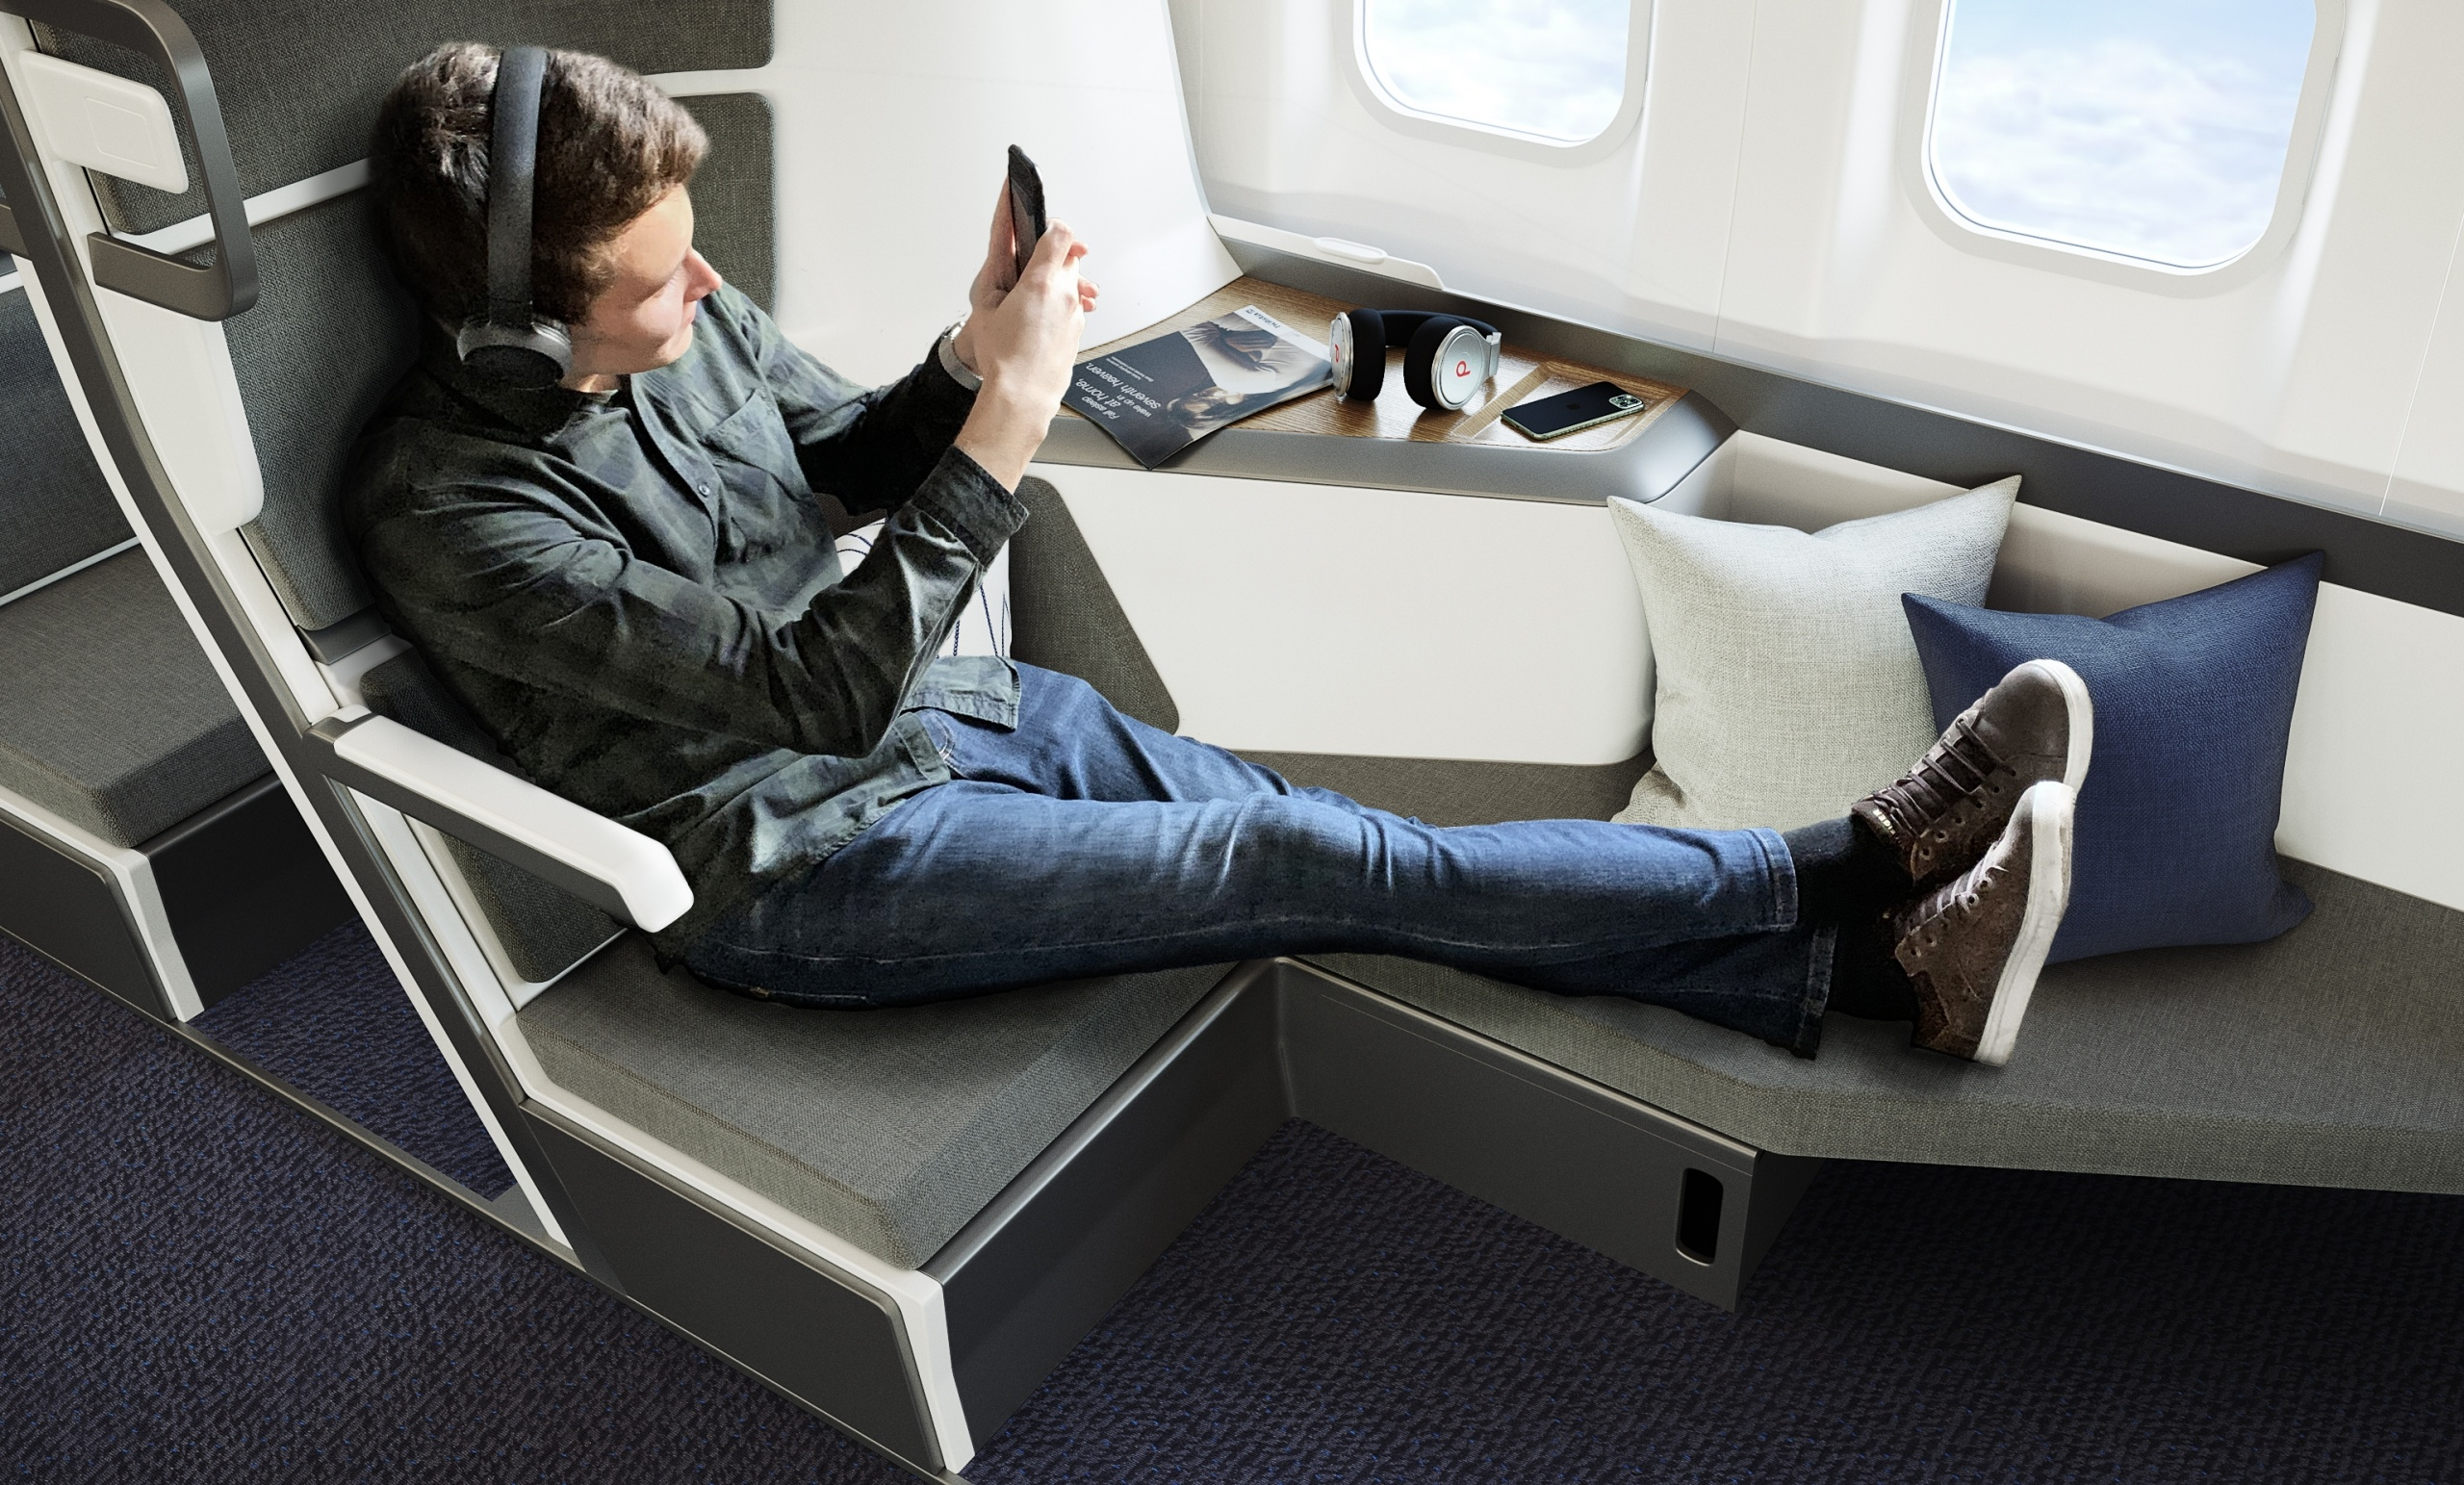 Comfy Airplane Seats 3D Visualization